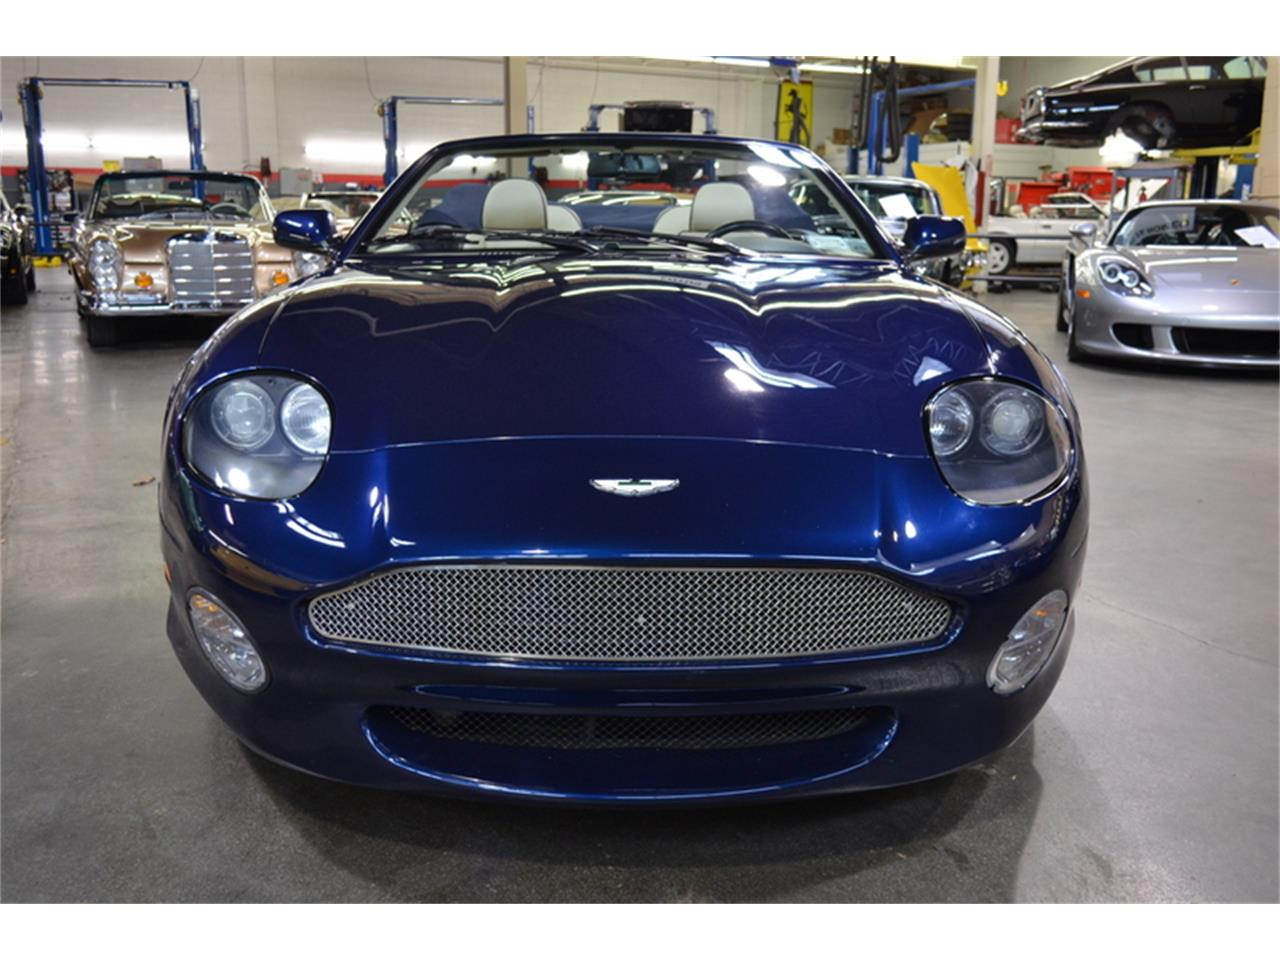 Large Picture of 2002 DB7 Vantage Volante located in New York - $39,500.00 - MBES